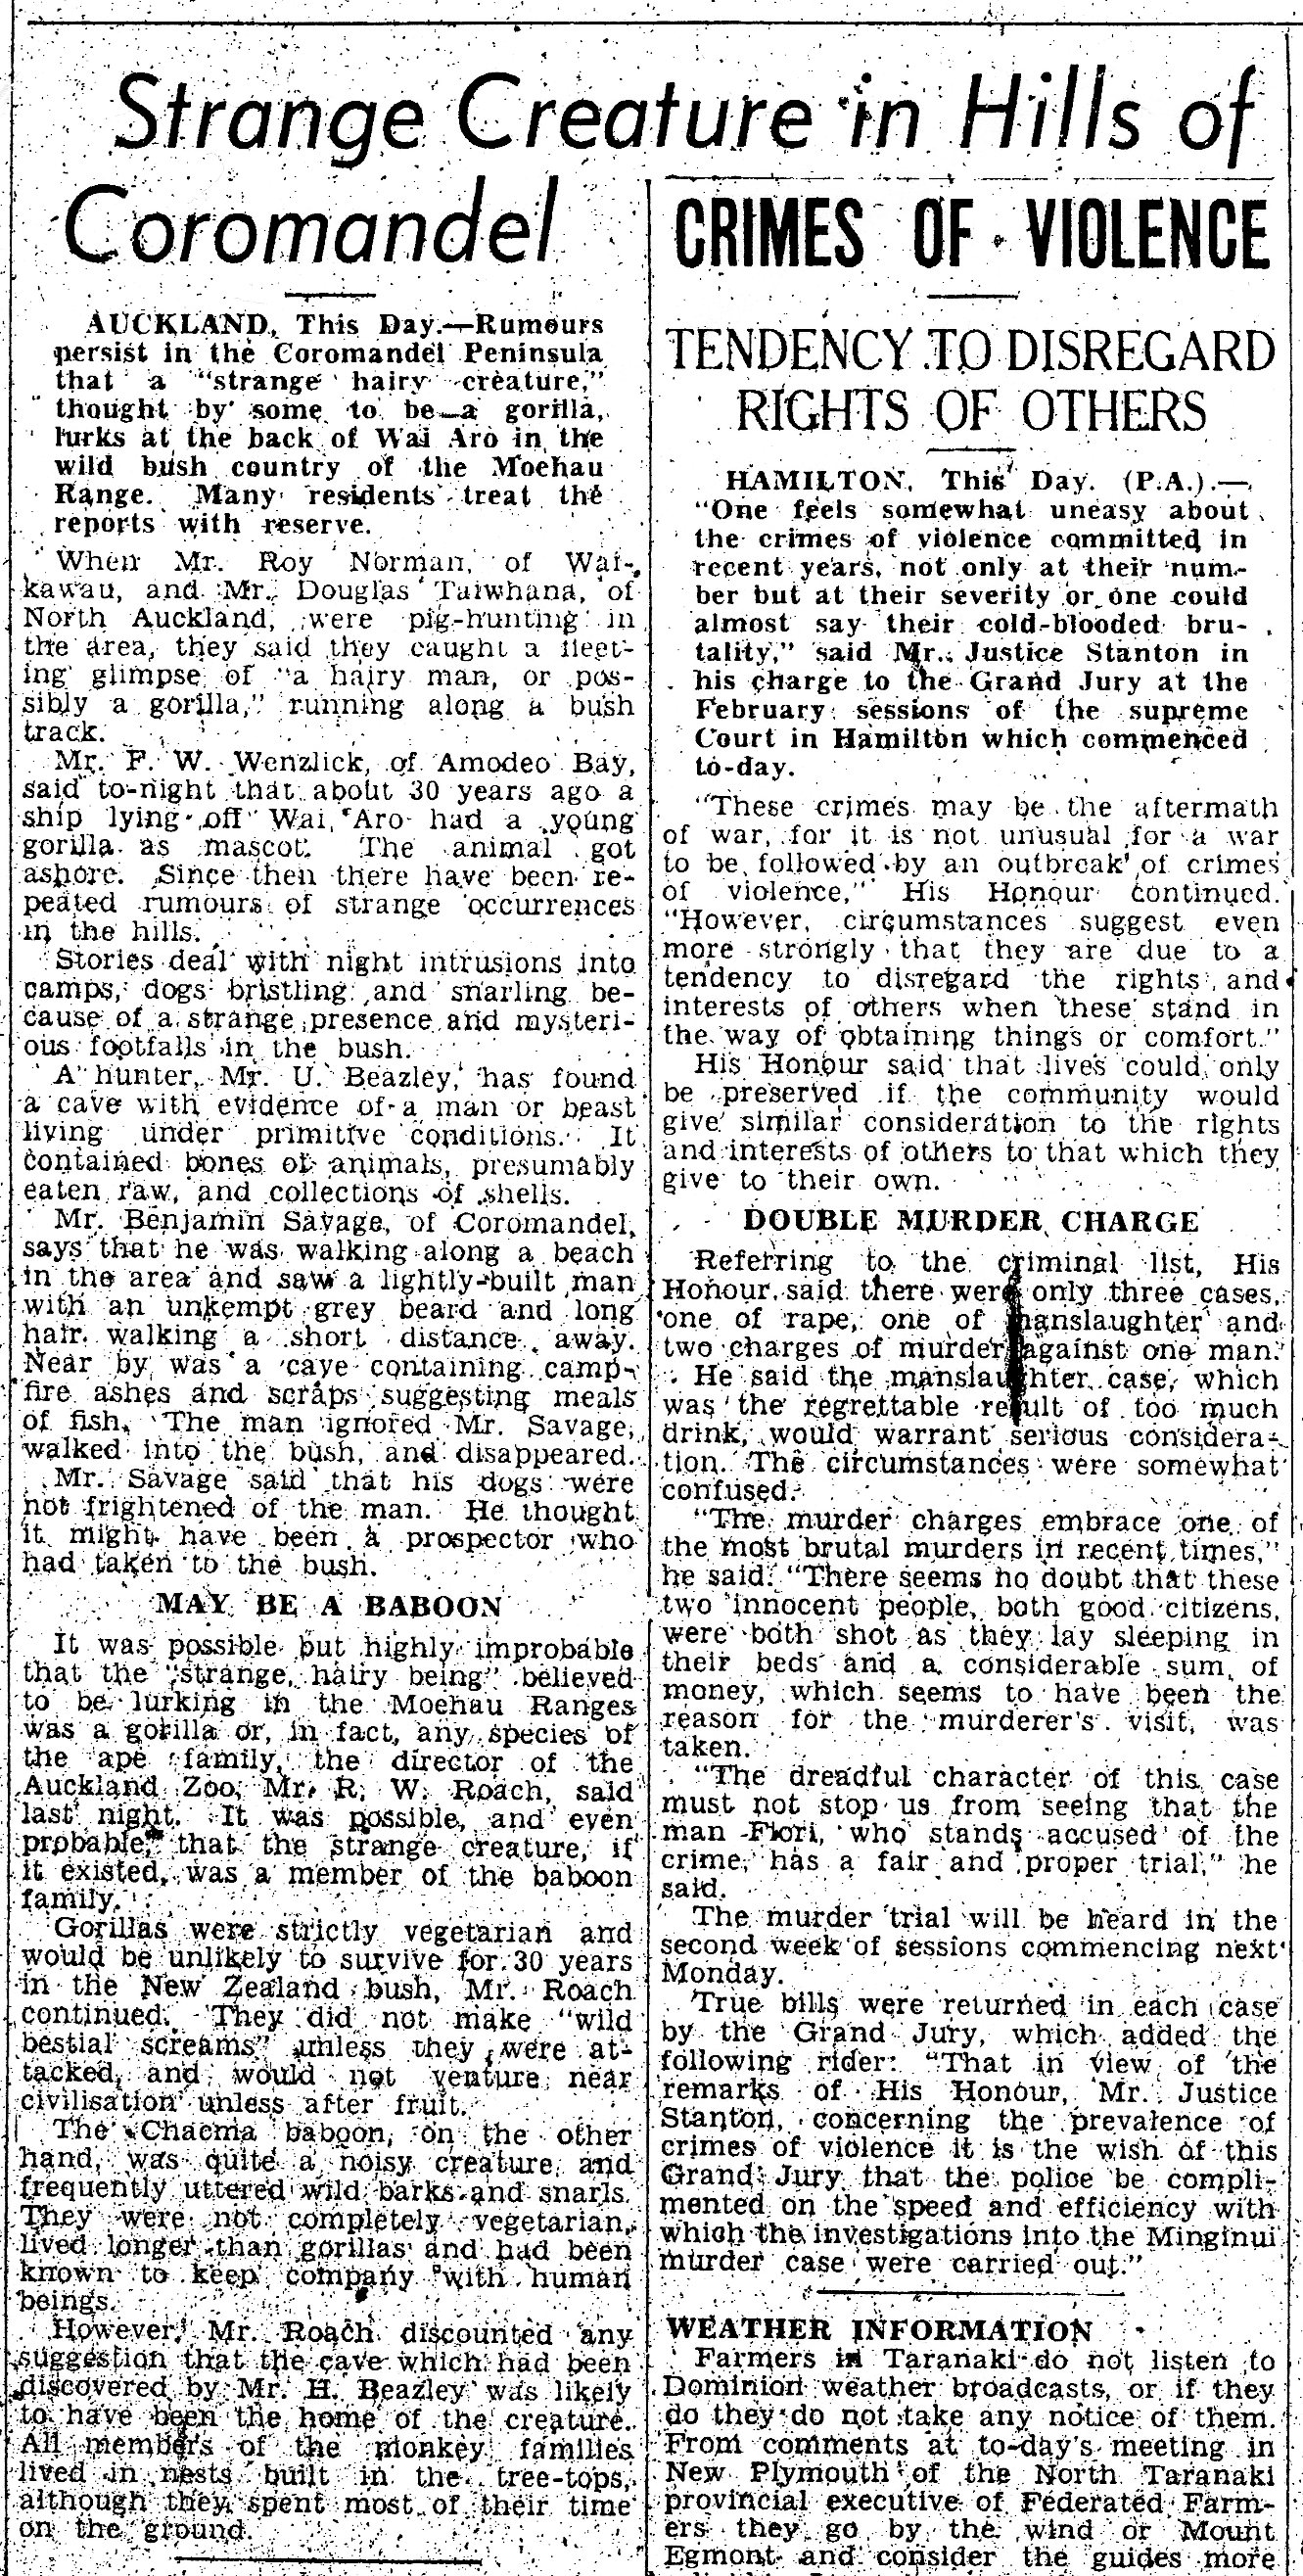 Strange Creatures In The Hills Of Coromandel - Taranki Herald (05-02-1952)